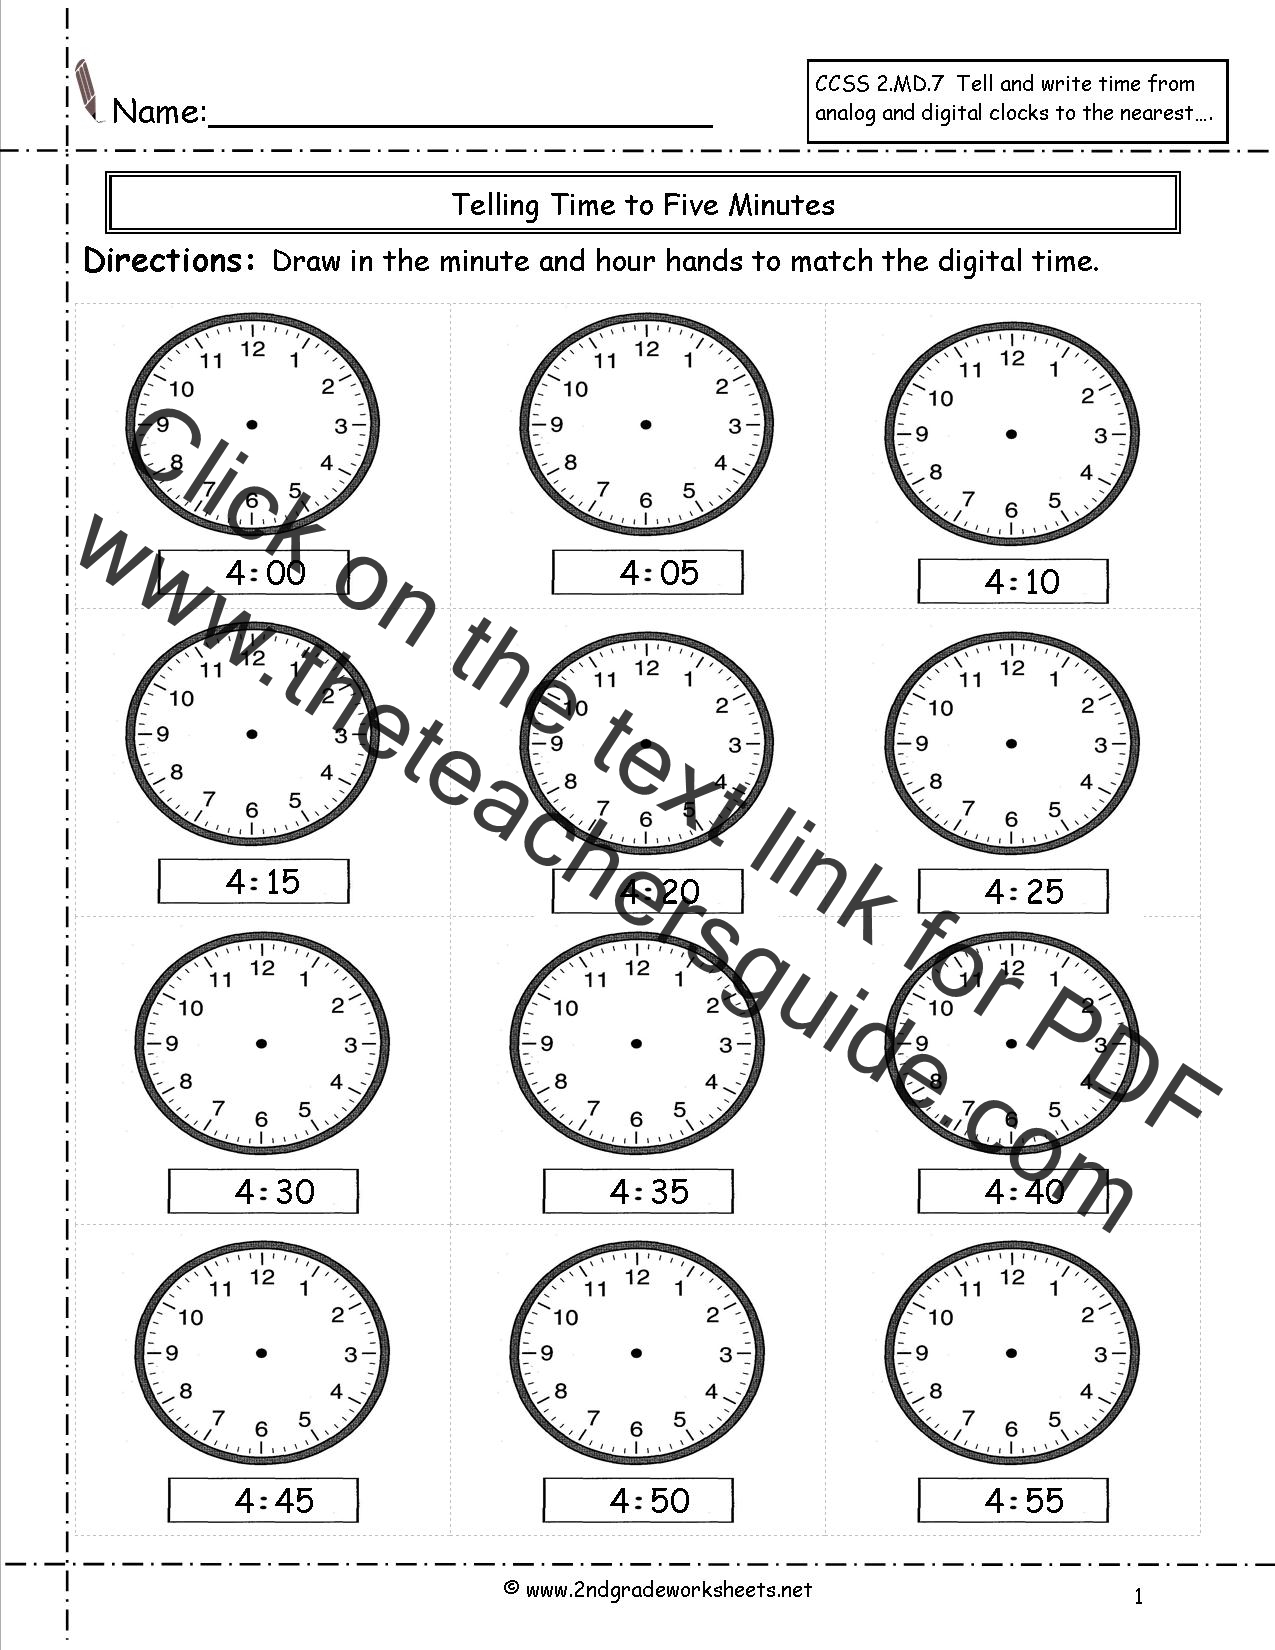 worksheet Analogue Time Worksheet ccss 2 md 7 worksheets telling time to five minutes worksheets